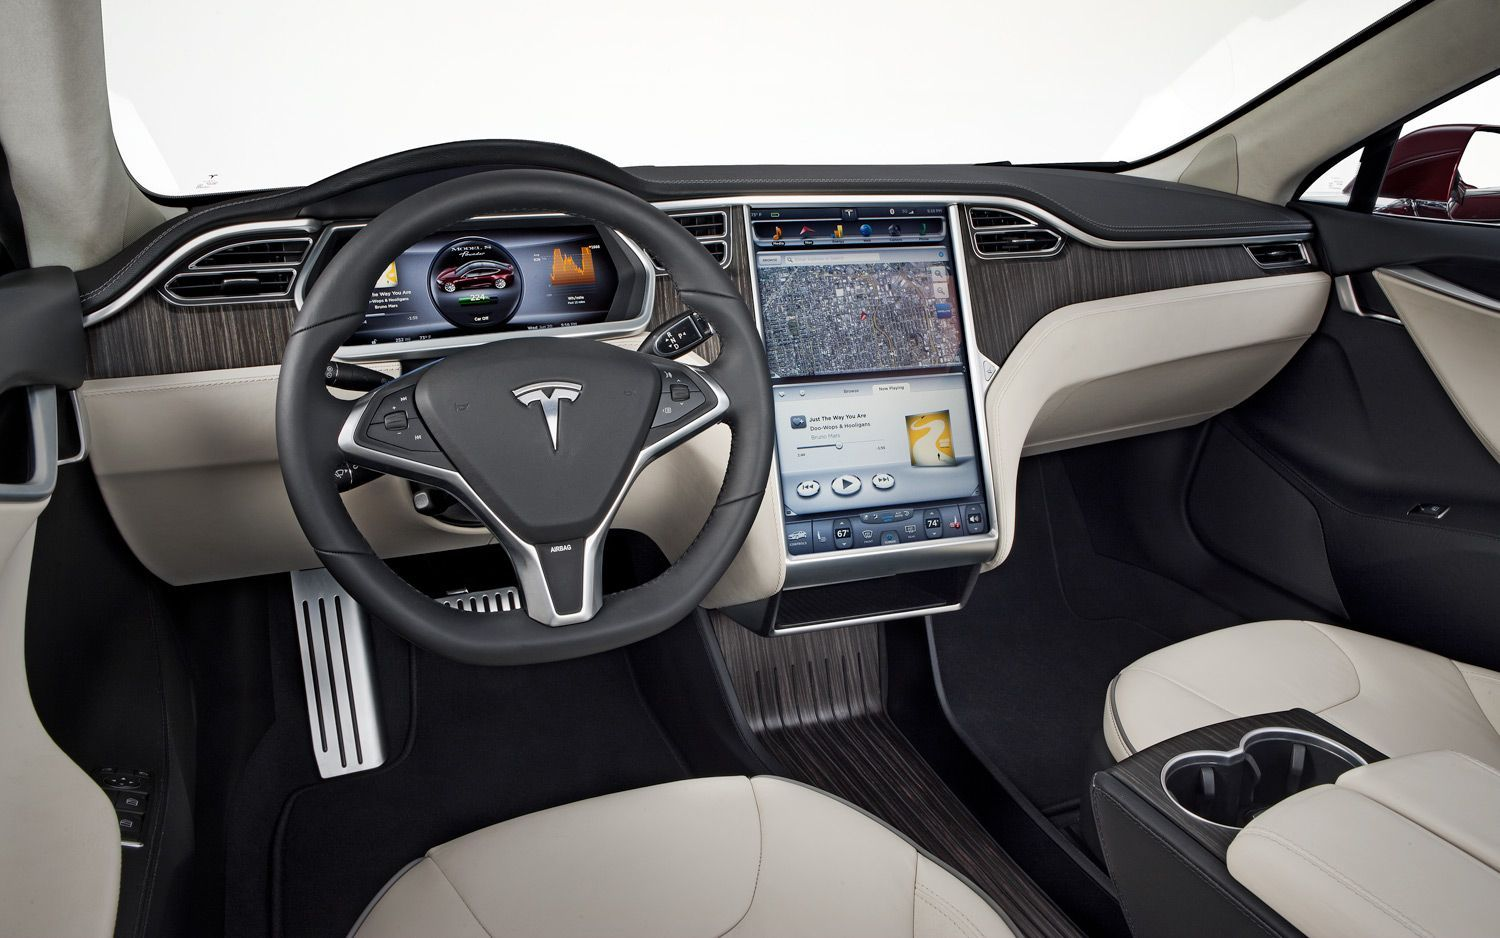 Tesla S Inside Is That A Full Touch Panel Finally